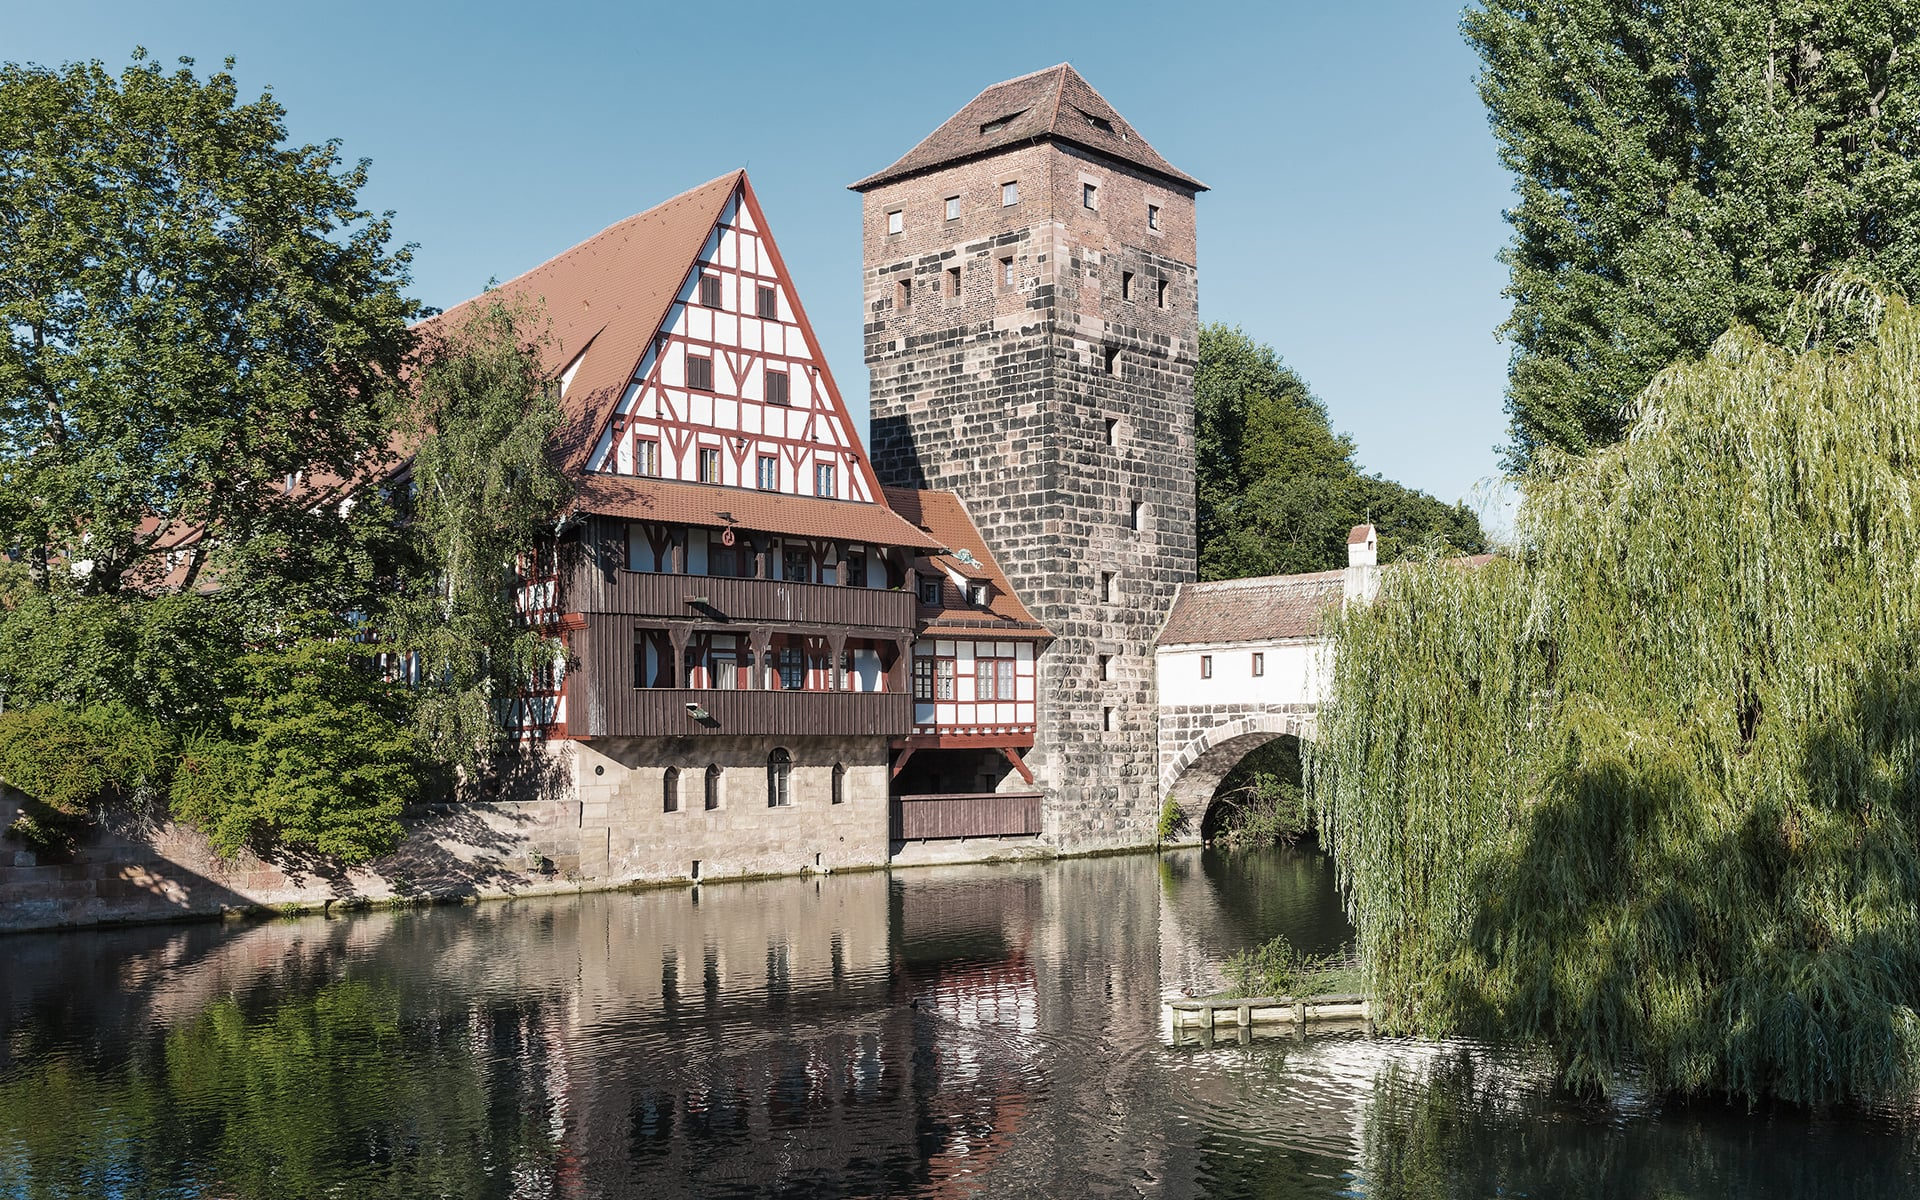 The medieval building Weinstadel and the historic water tower next to the river Pegnitz in Nuremberg, Germany